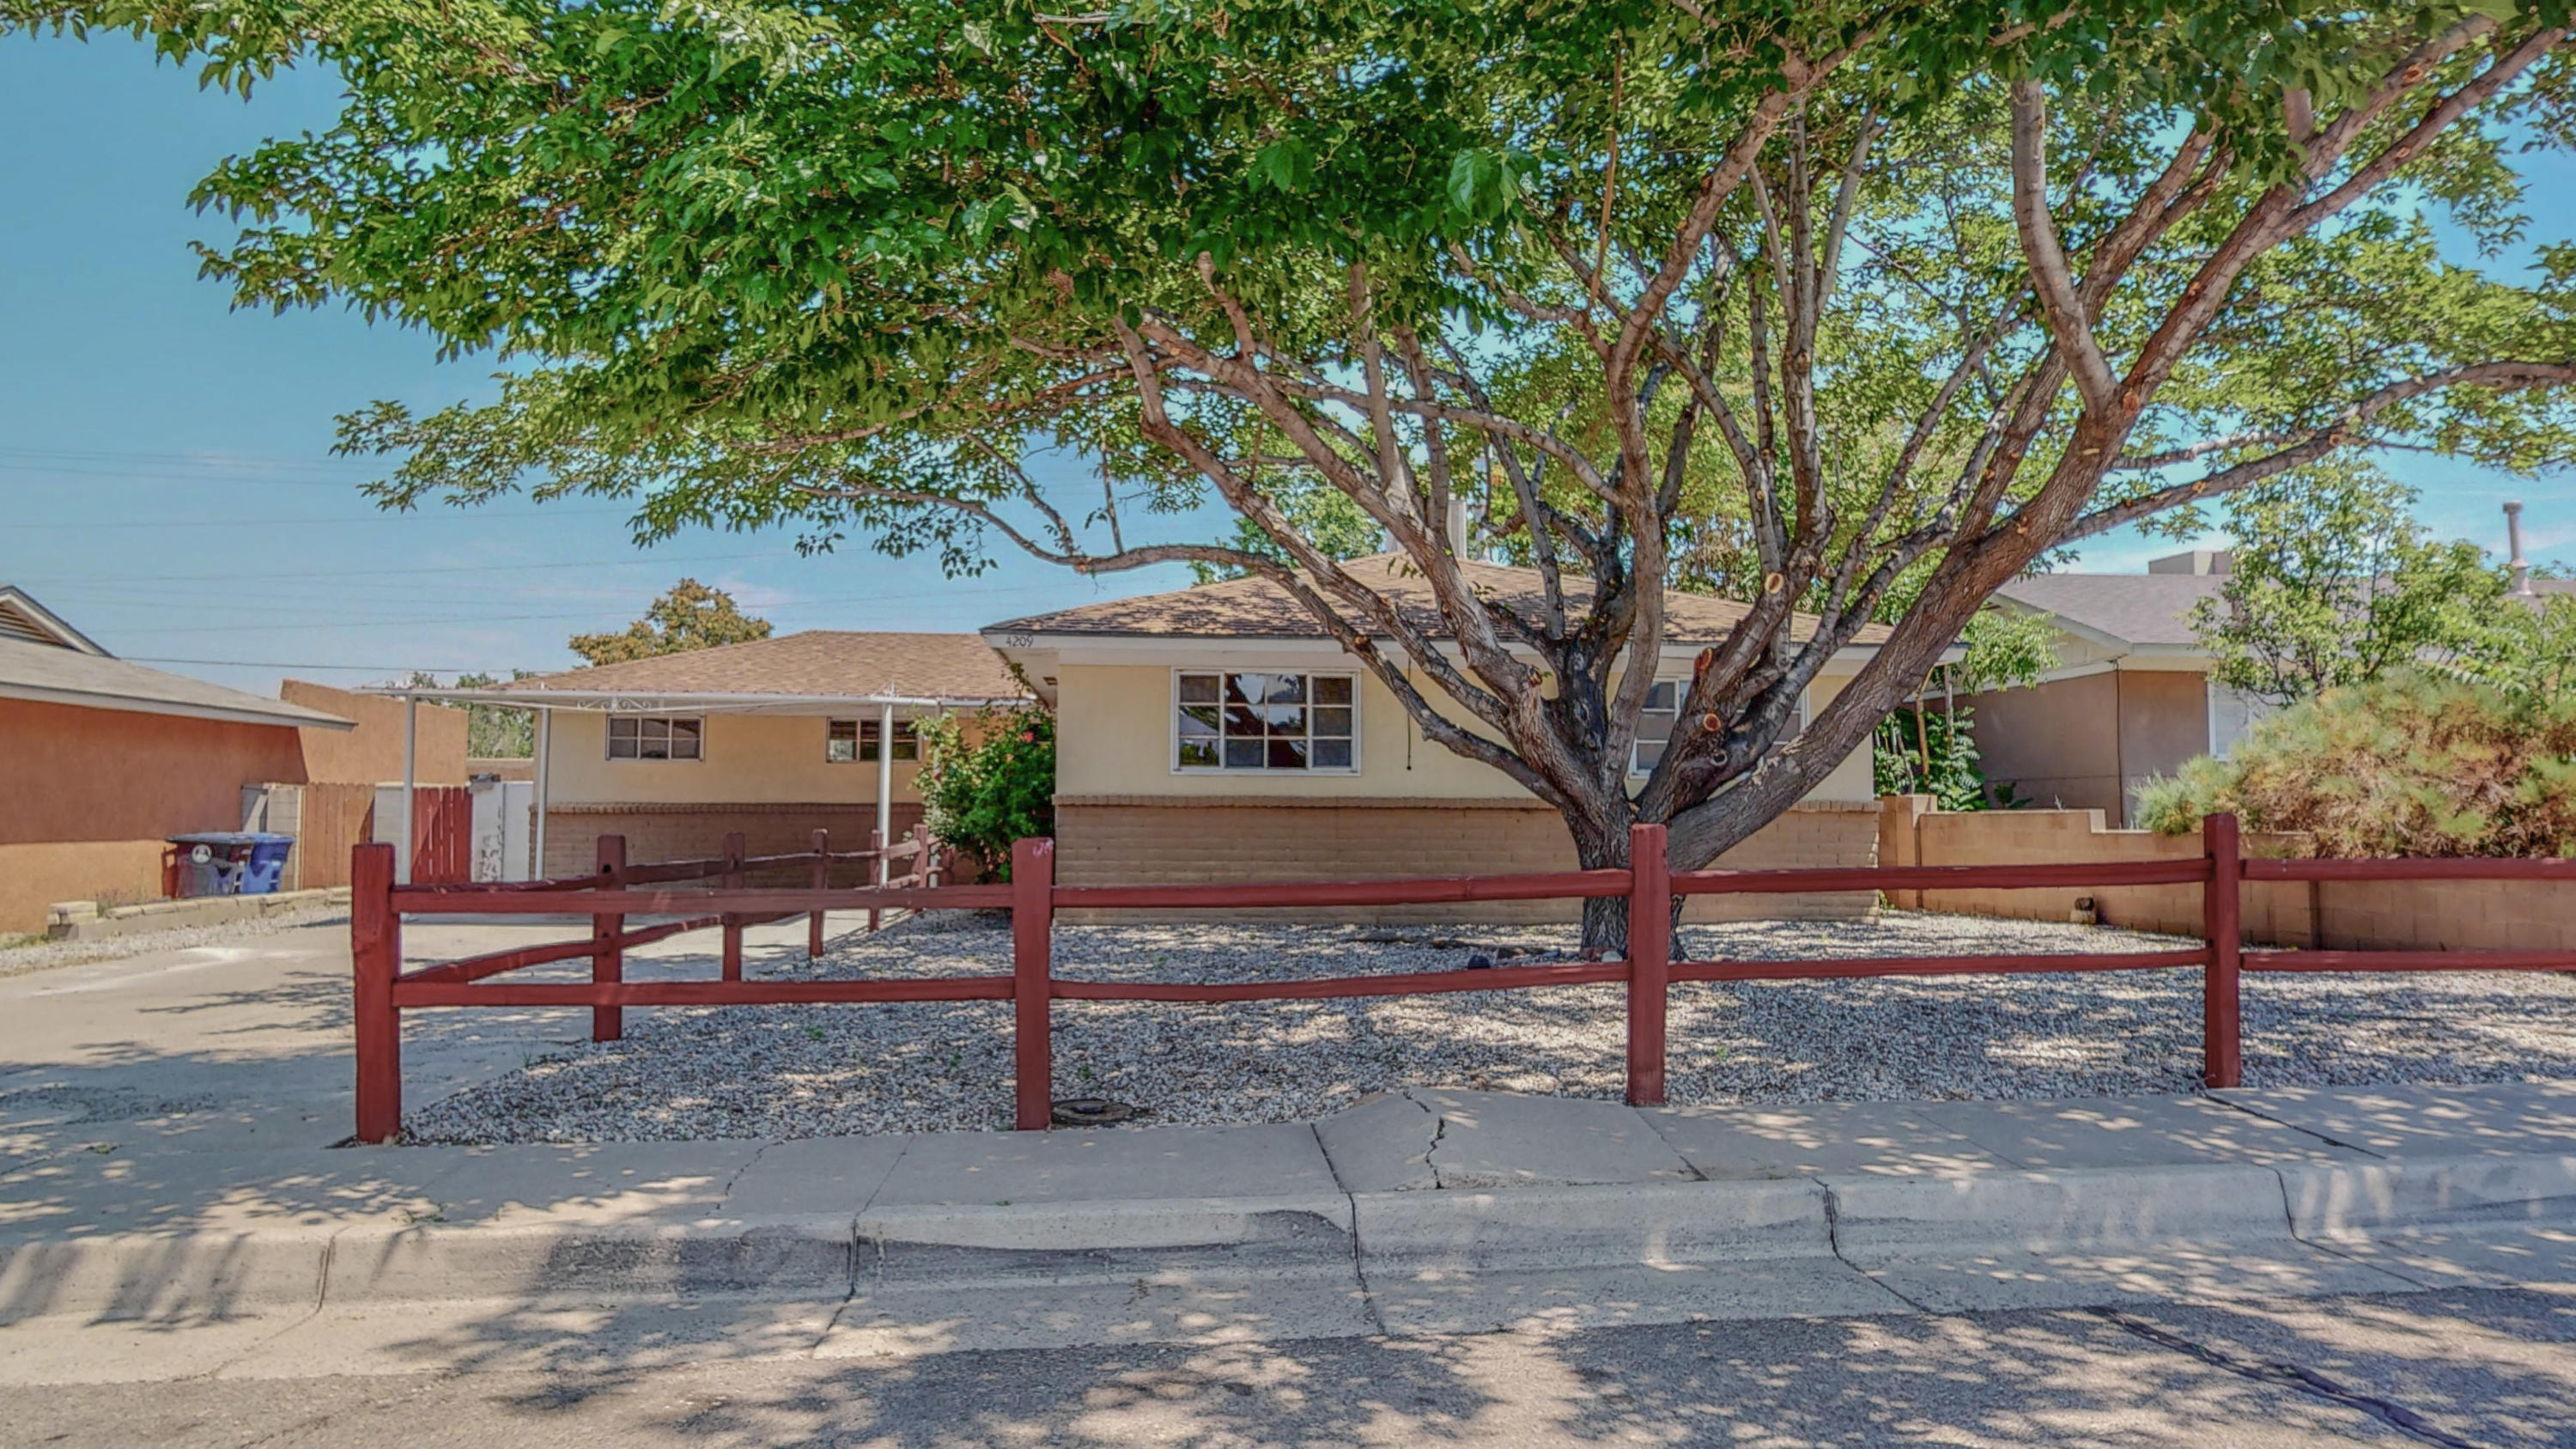 This beautiful home is located in the heart of Albuquerque.  This home boasts 3 bedrooms with an addition that can be used for a 4th bedroom, office, or additional living room.  This home has hard flooring throughout and has been freshly painted and updated.  This home will not last long!